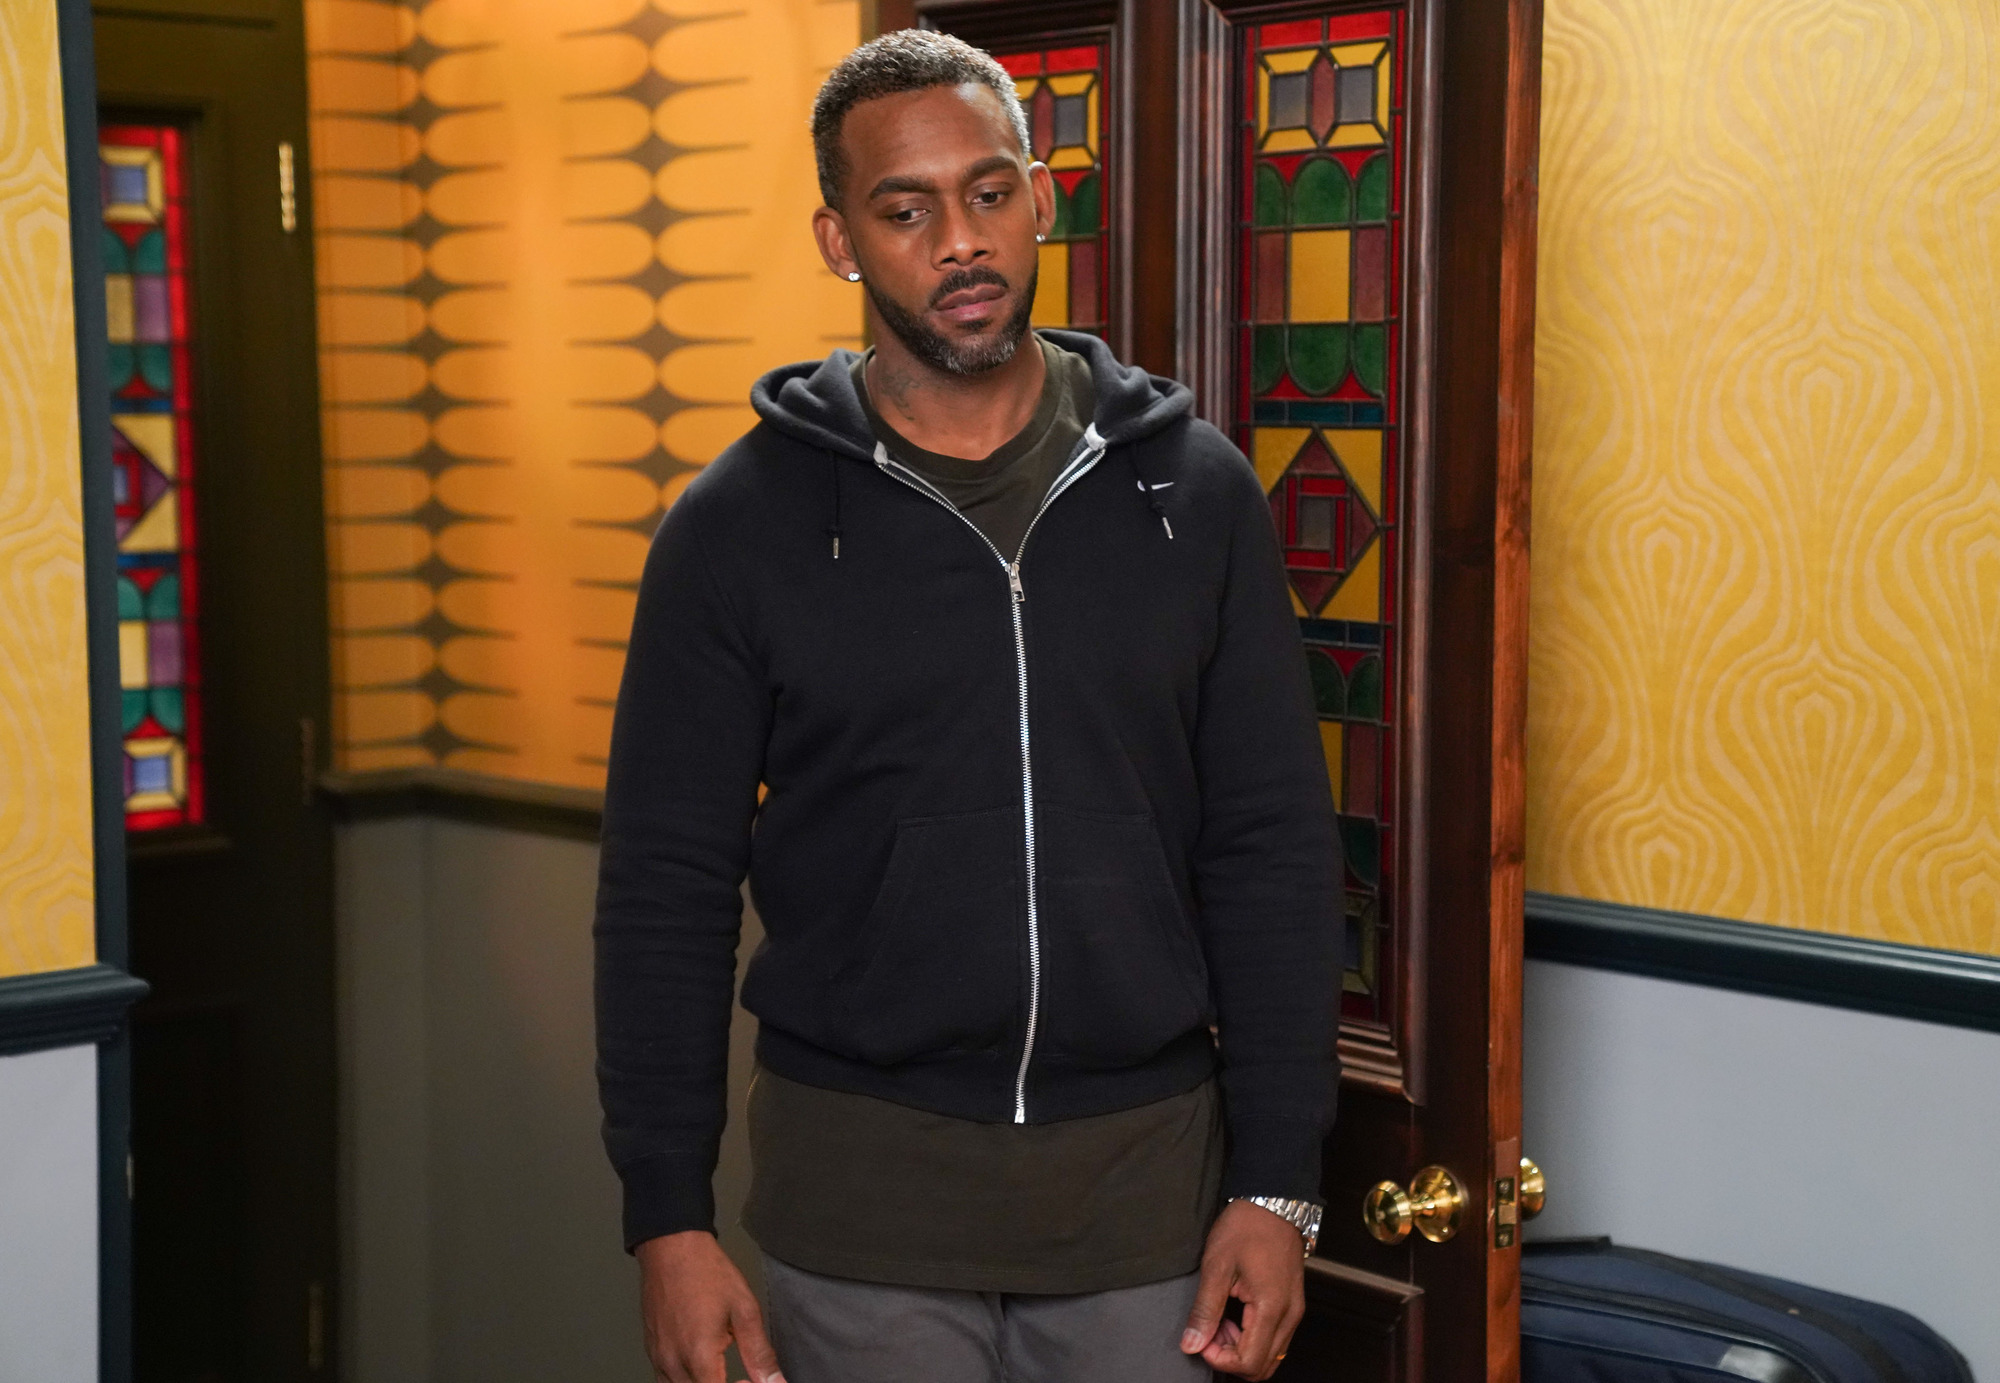 Who did Richard Blackwood play in EastEnders and will he return?